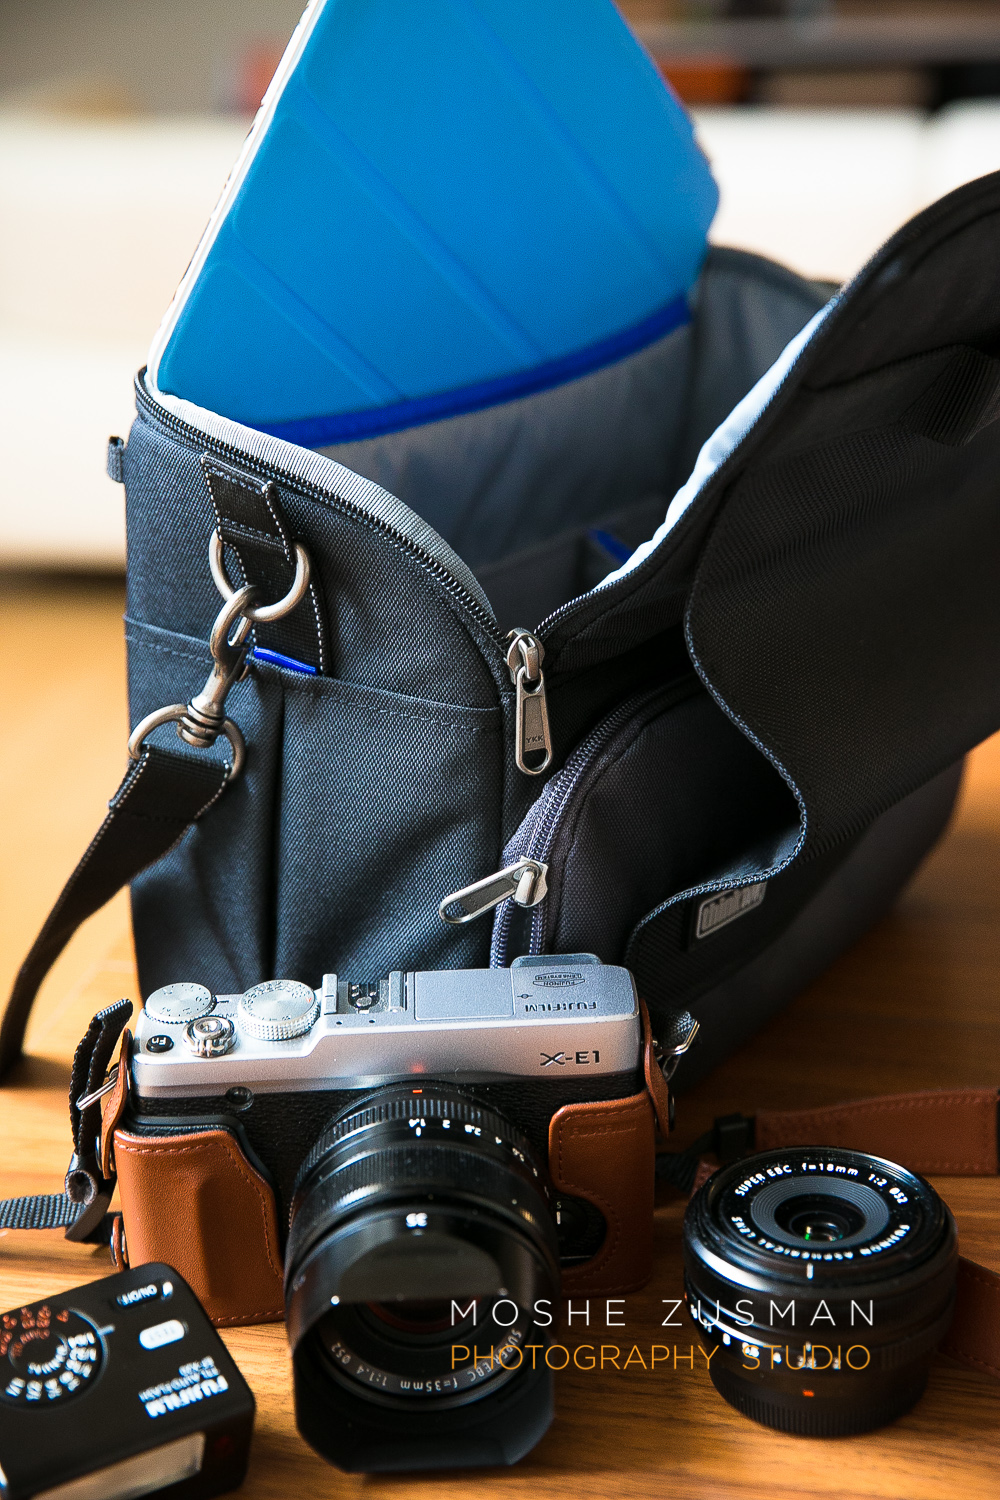 ThinkTank Bag - the Mirrorless Mover 30i and my Fuji X-E1